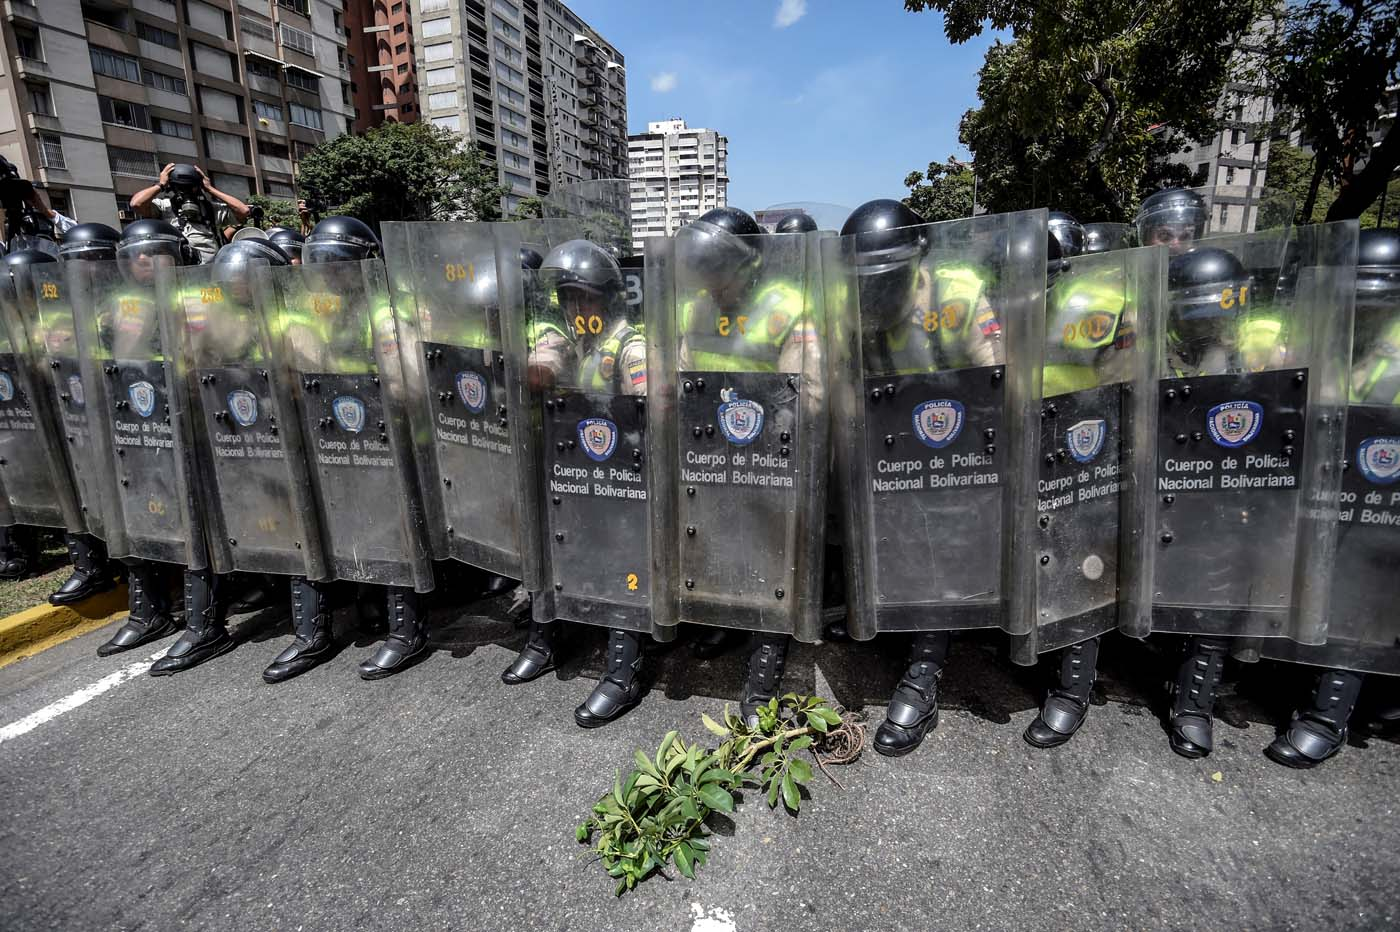 Riot police officers block an avenue during a protest against Nicolas Maduro's government in Caracas on April 4, 2017. Protesters clashed with police in Venezuela Tuesday as the opposition mobilized against moves to tighten President Nicolas Maduro's grip on power. Protesters hurled stones at riot police who fired tear gas as they blocked the demonstrators from advancing through central Caracas, where pro-government activists were also planning to march. / AFP PHOTO / JUAN BARRETO